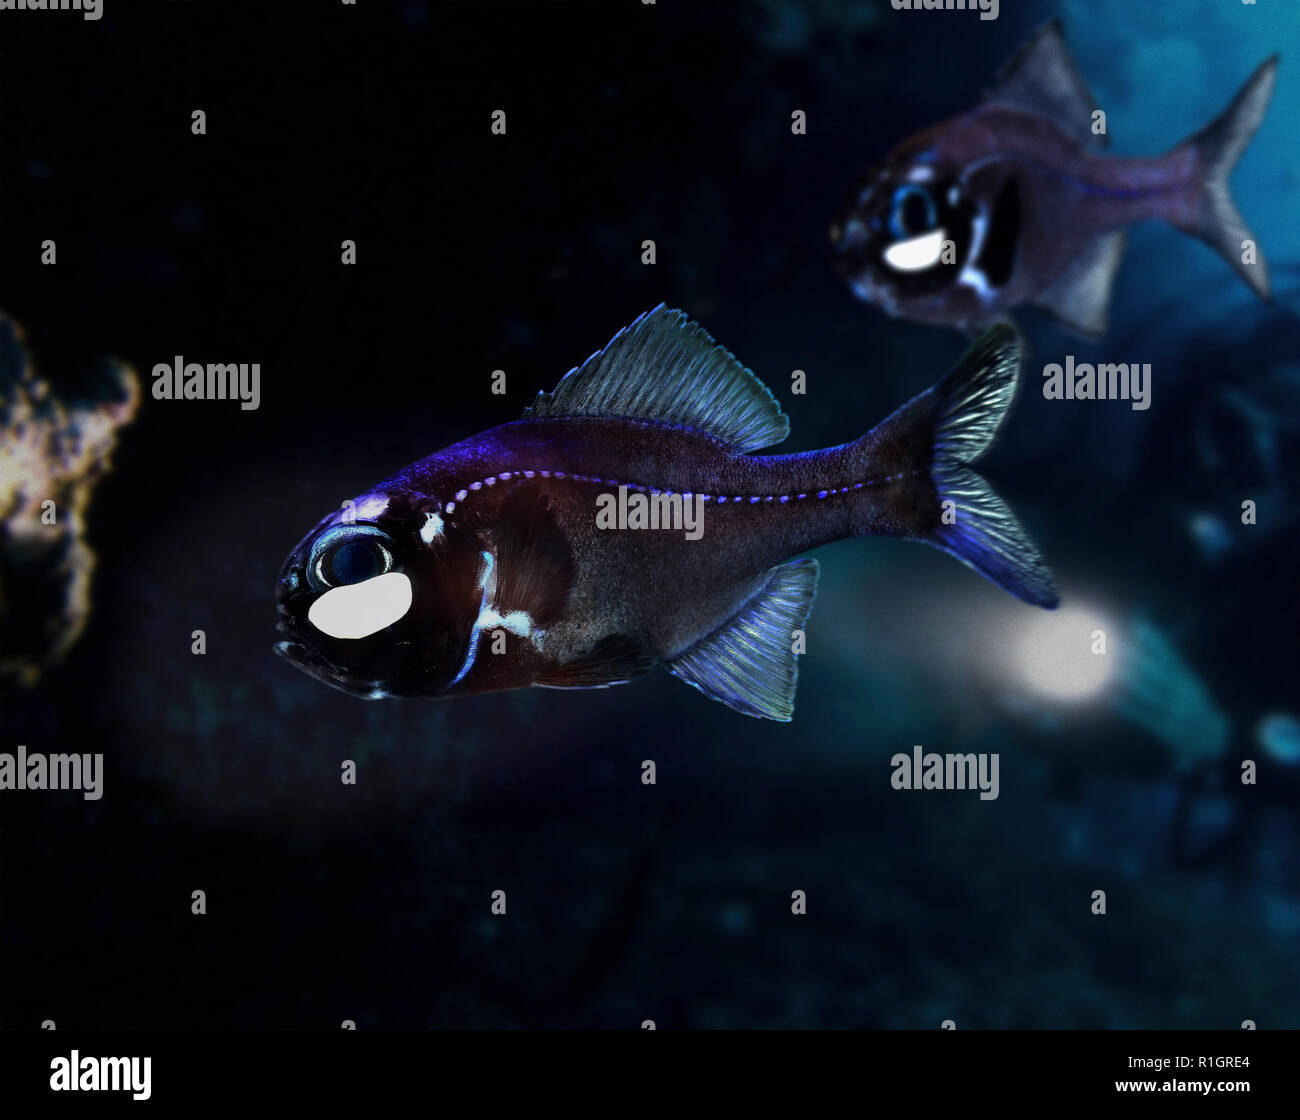 Eyelight fish or one-fin flashlightfish, Photoblepharon palpebratus. They have subocular bioluminescent organs which it likely uses to attract and - Stock Image